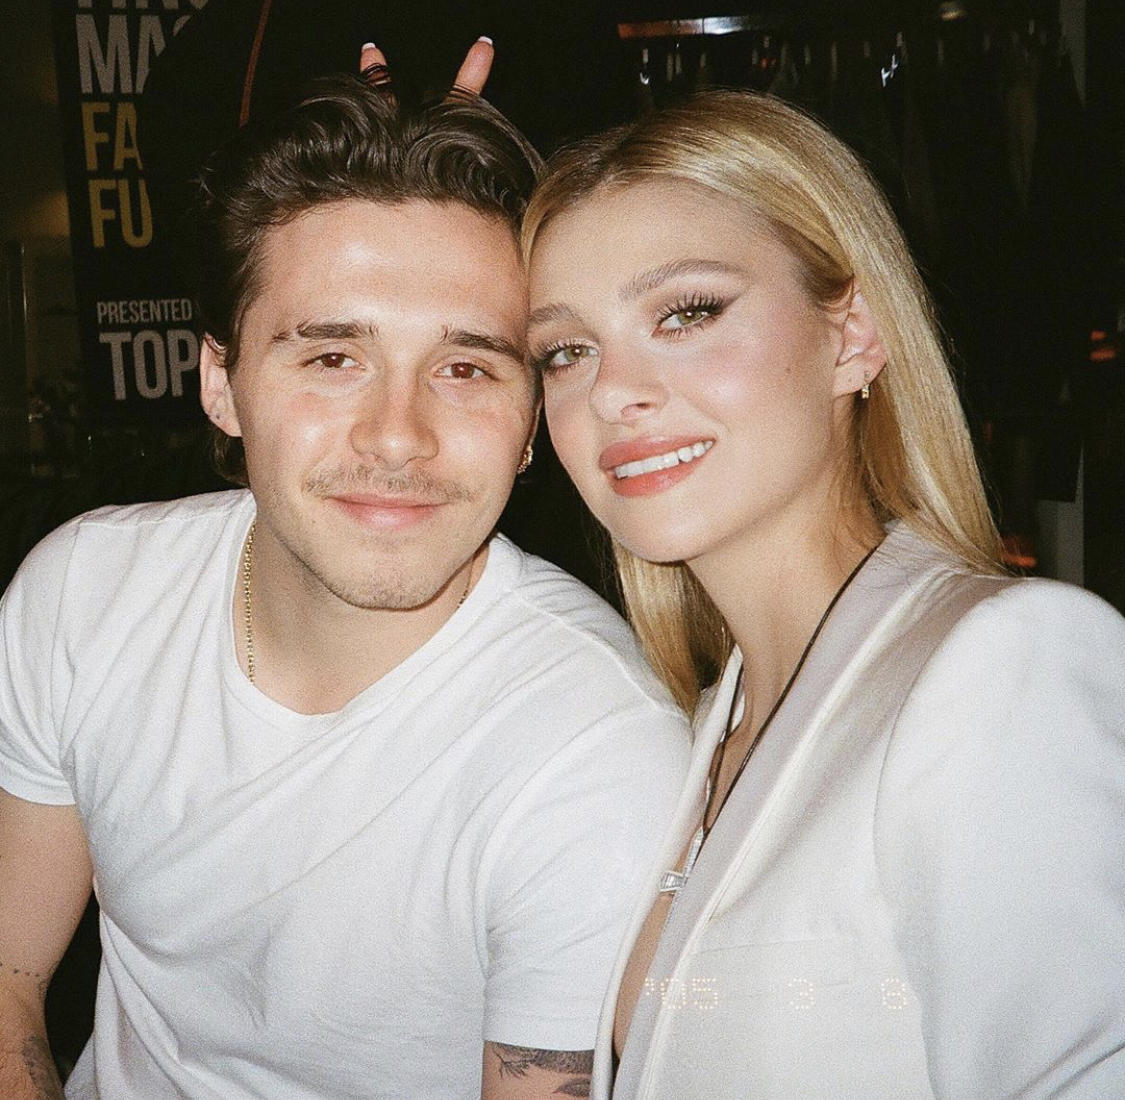 Brooklyn Beckham and Nicola Peltz Are Officially Engaged